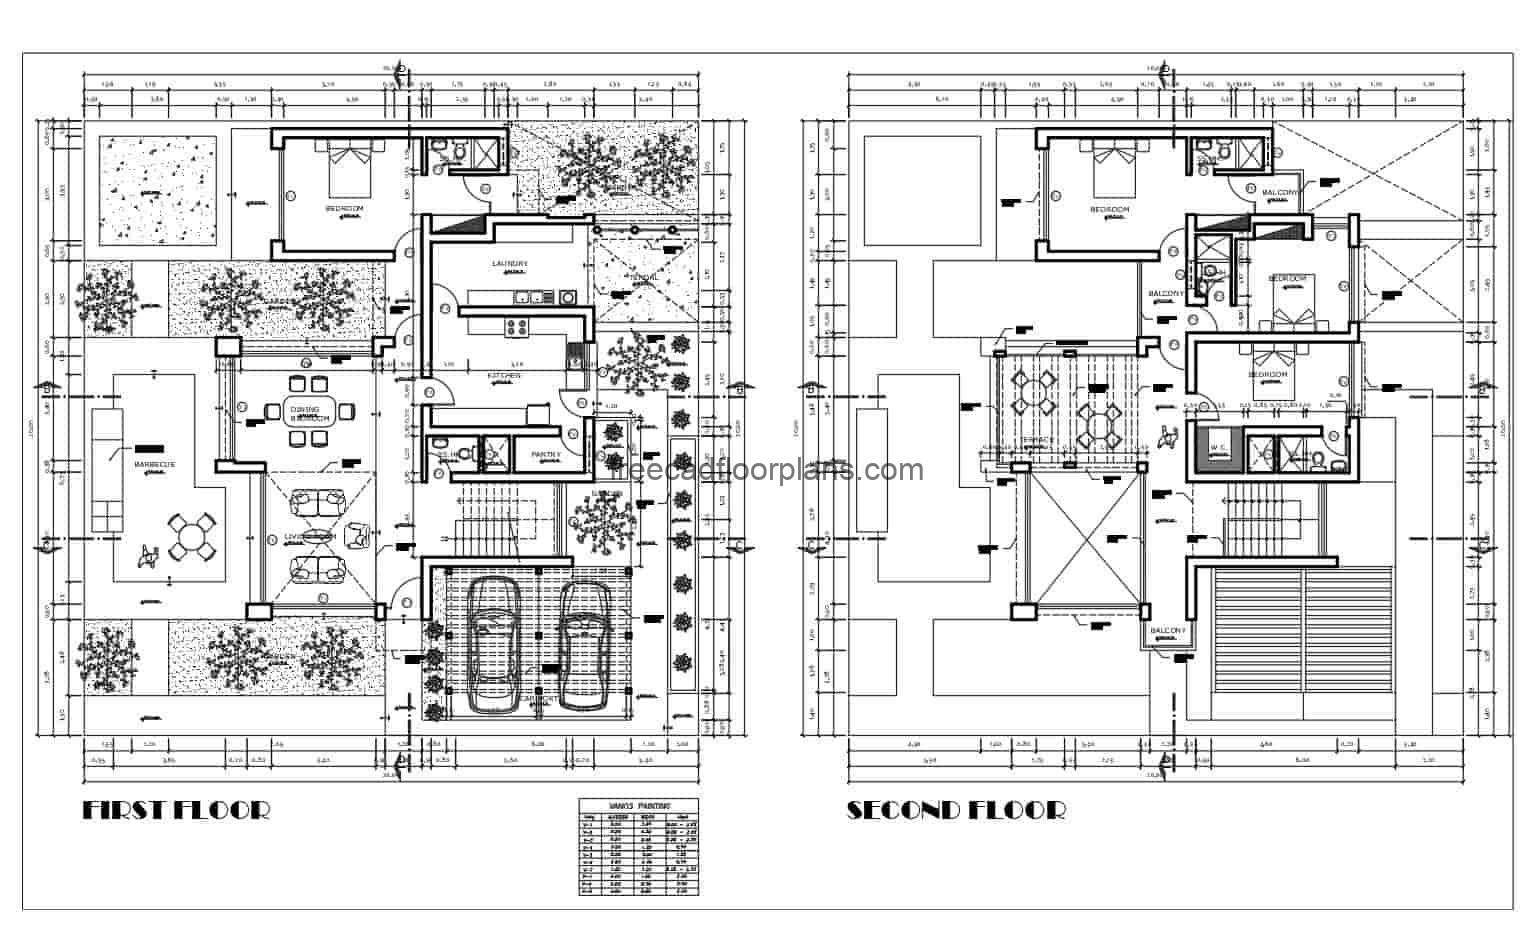 2D Plans for free download in DWG format of modern style residence Autocad two levels, spaces distributed in social area in the first level with parking for two vehicles, living room, dining area, kitchen, pantry, laundry area, patio with BBQ area and garden. Second level private area with terrace, three bedrooms with independent bath, the house in total has four bedrooms. Detailed 2D blueprints for free download, with blocks and DWG furniture from Autocad.